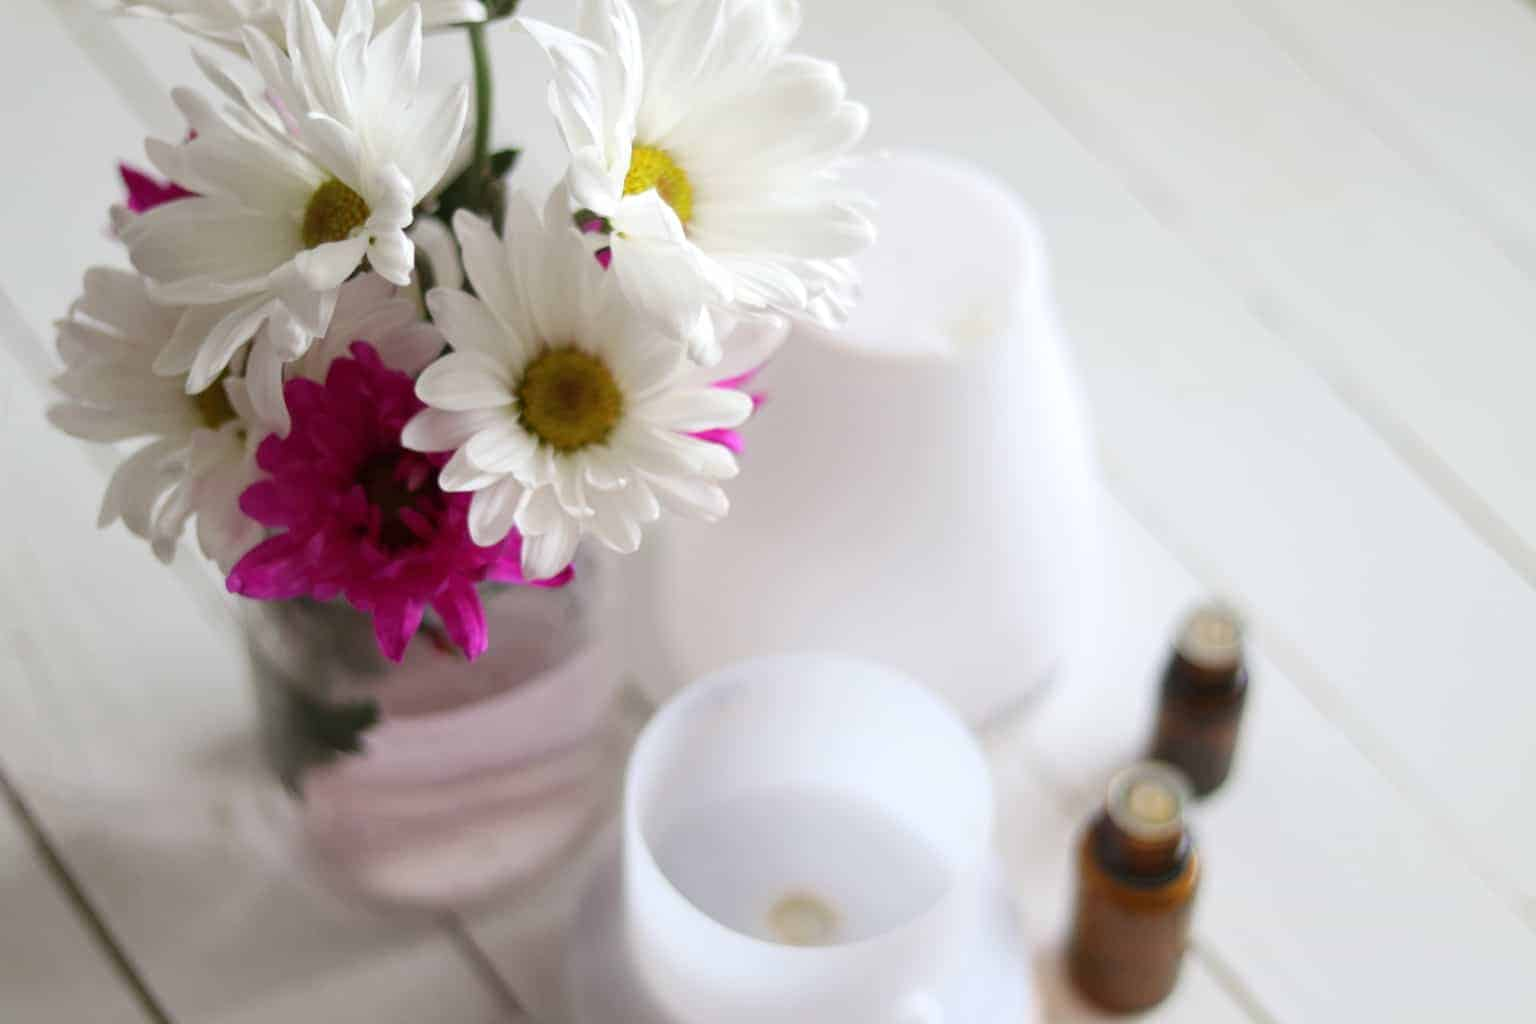 Fresh flowers in glass jar near essential oil bottles and oil diffuser.